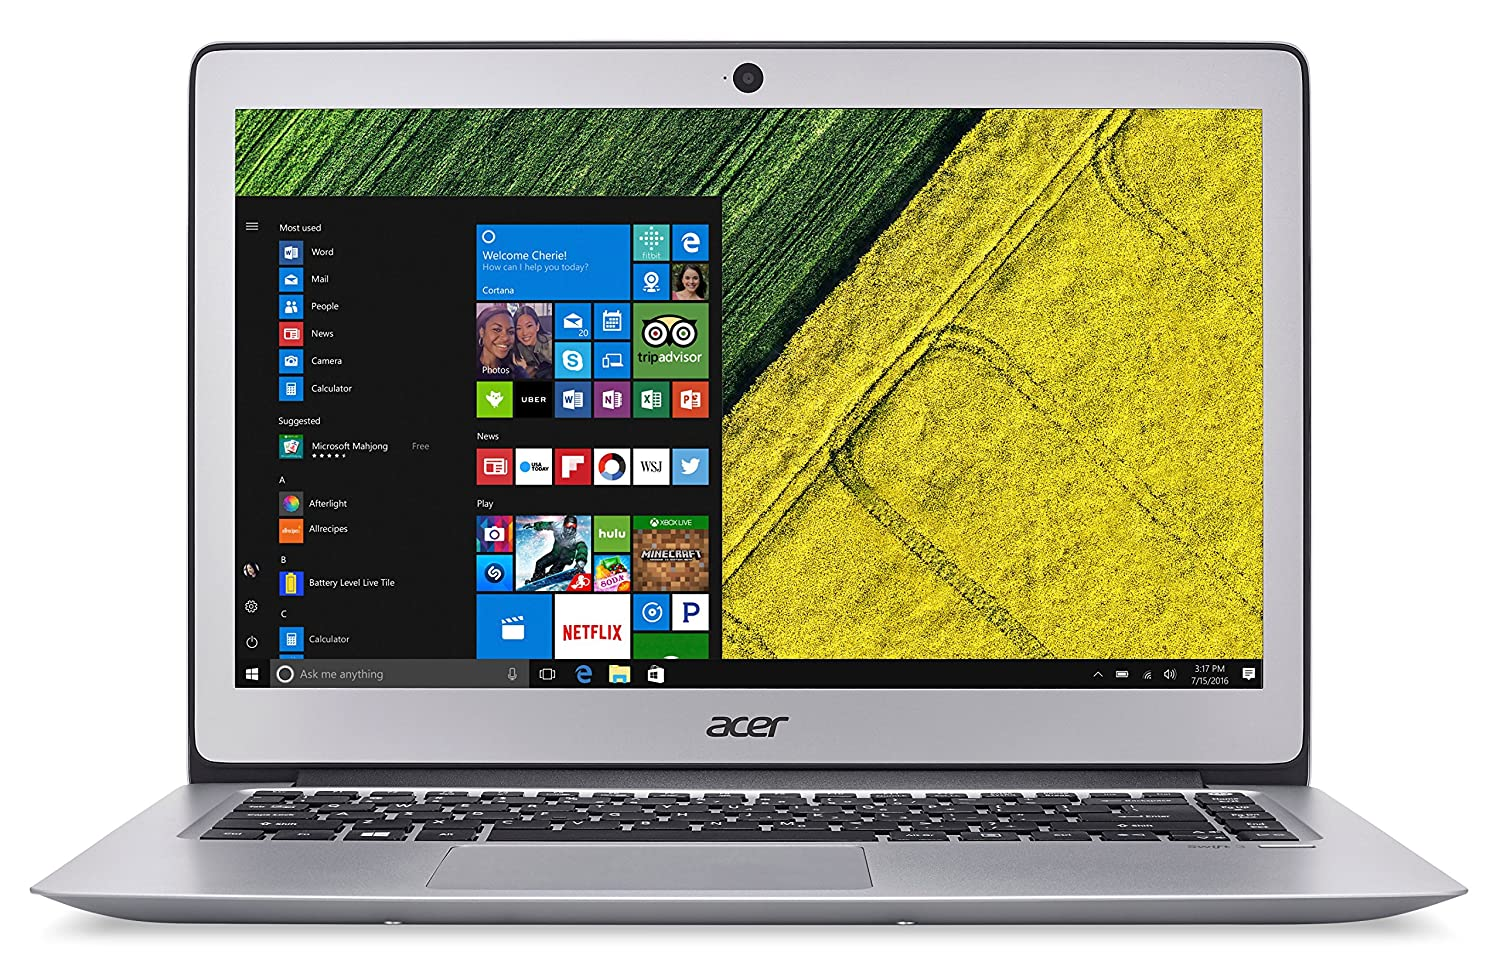 Acer NXF.021 Ultrabook - Ordenador portátil, Intel Core i5, 4 GB de RAM, 128 GB, Intel HD Graphics 620, Windows 10 Home, Gris, 14